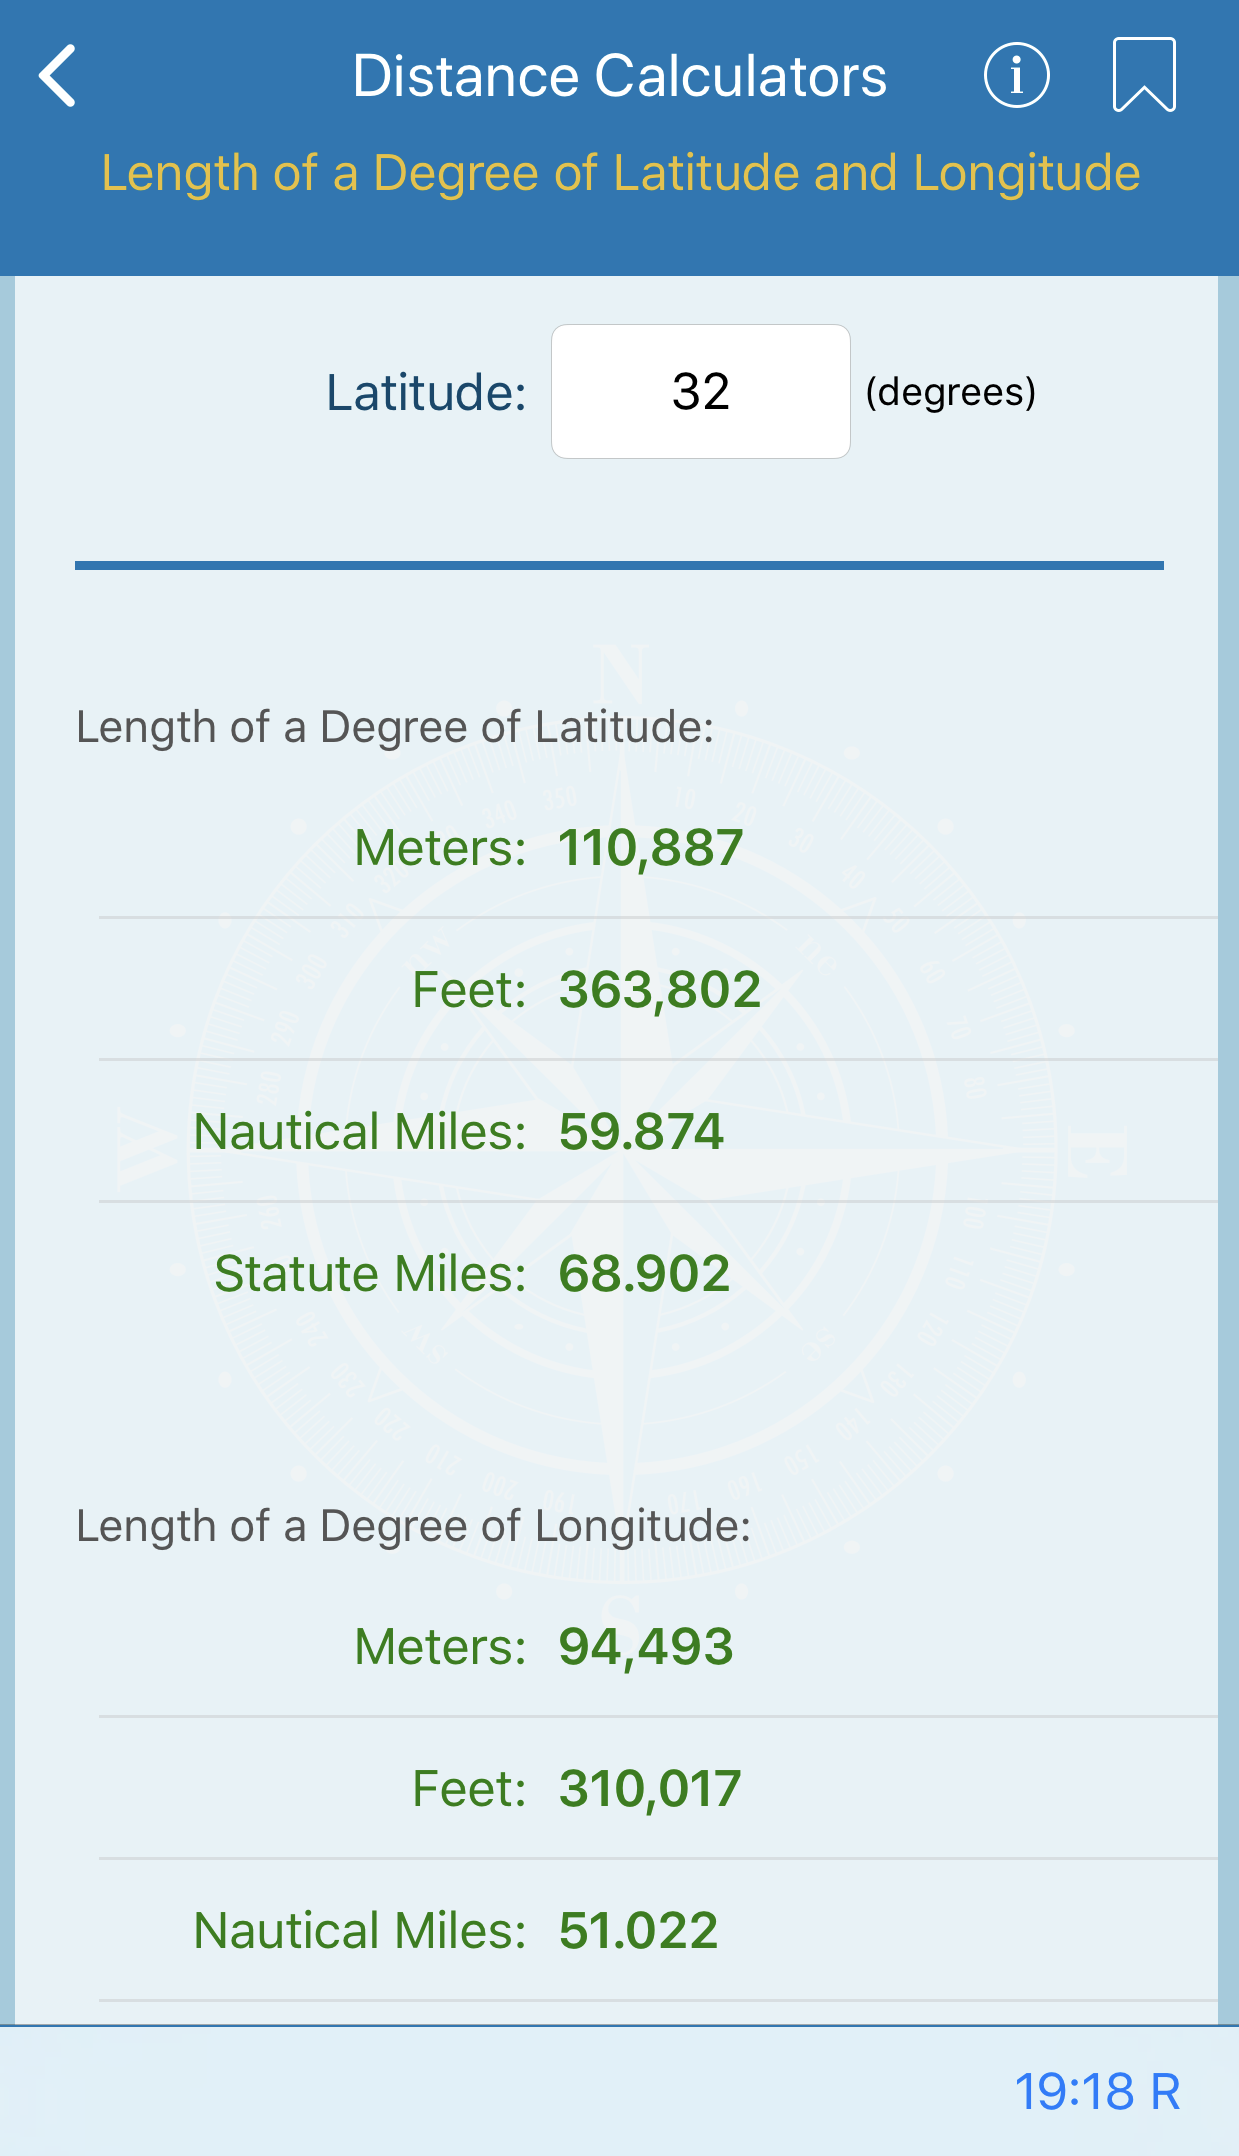 Length of a Degree of Latitude and Longitude